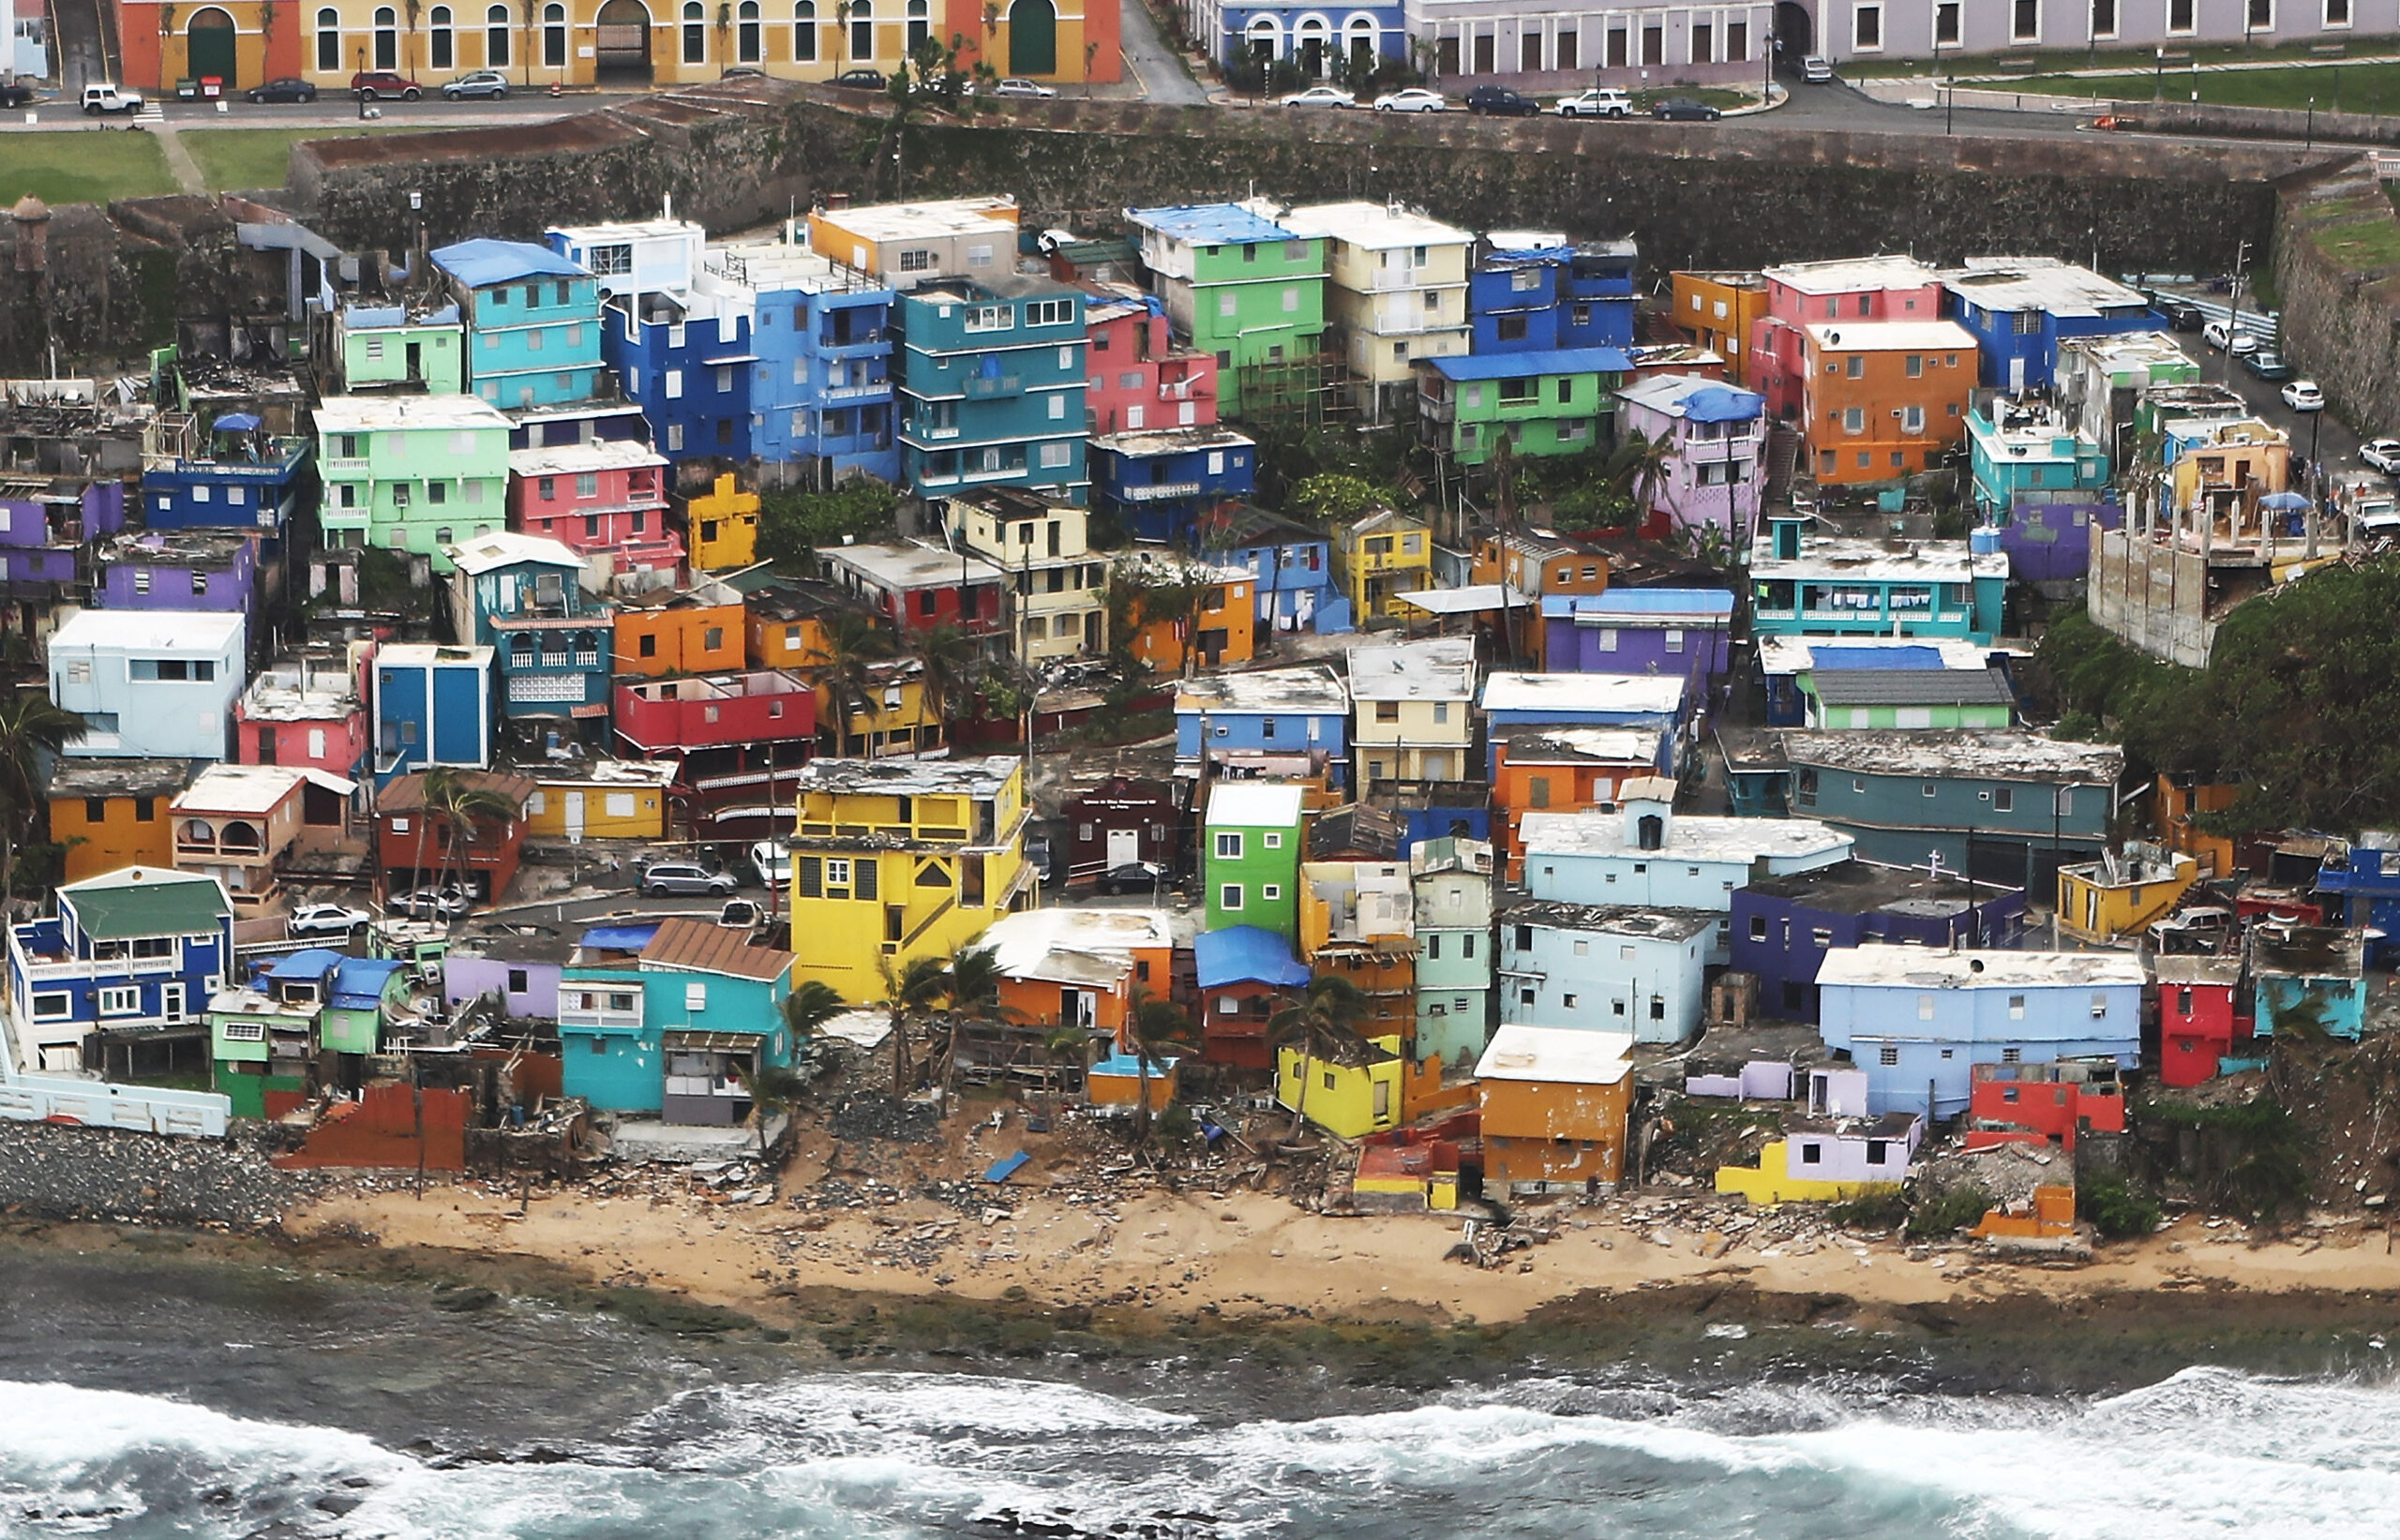 National League Of Cities Delegation Meets With Puerto